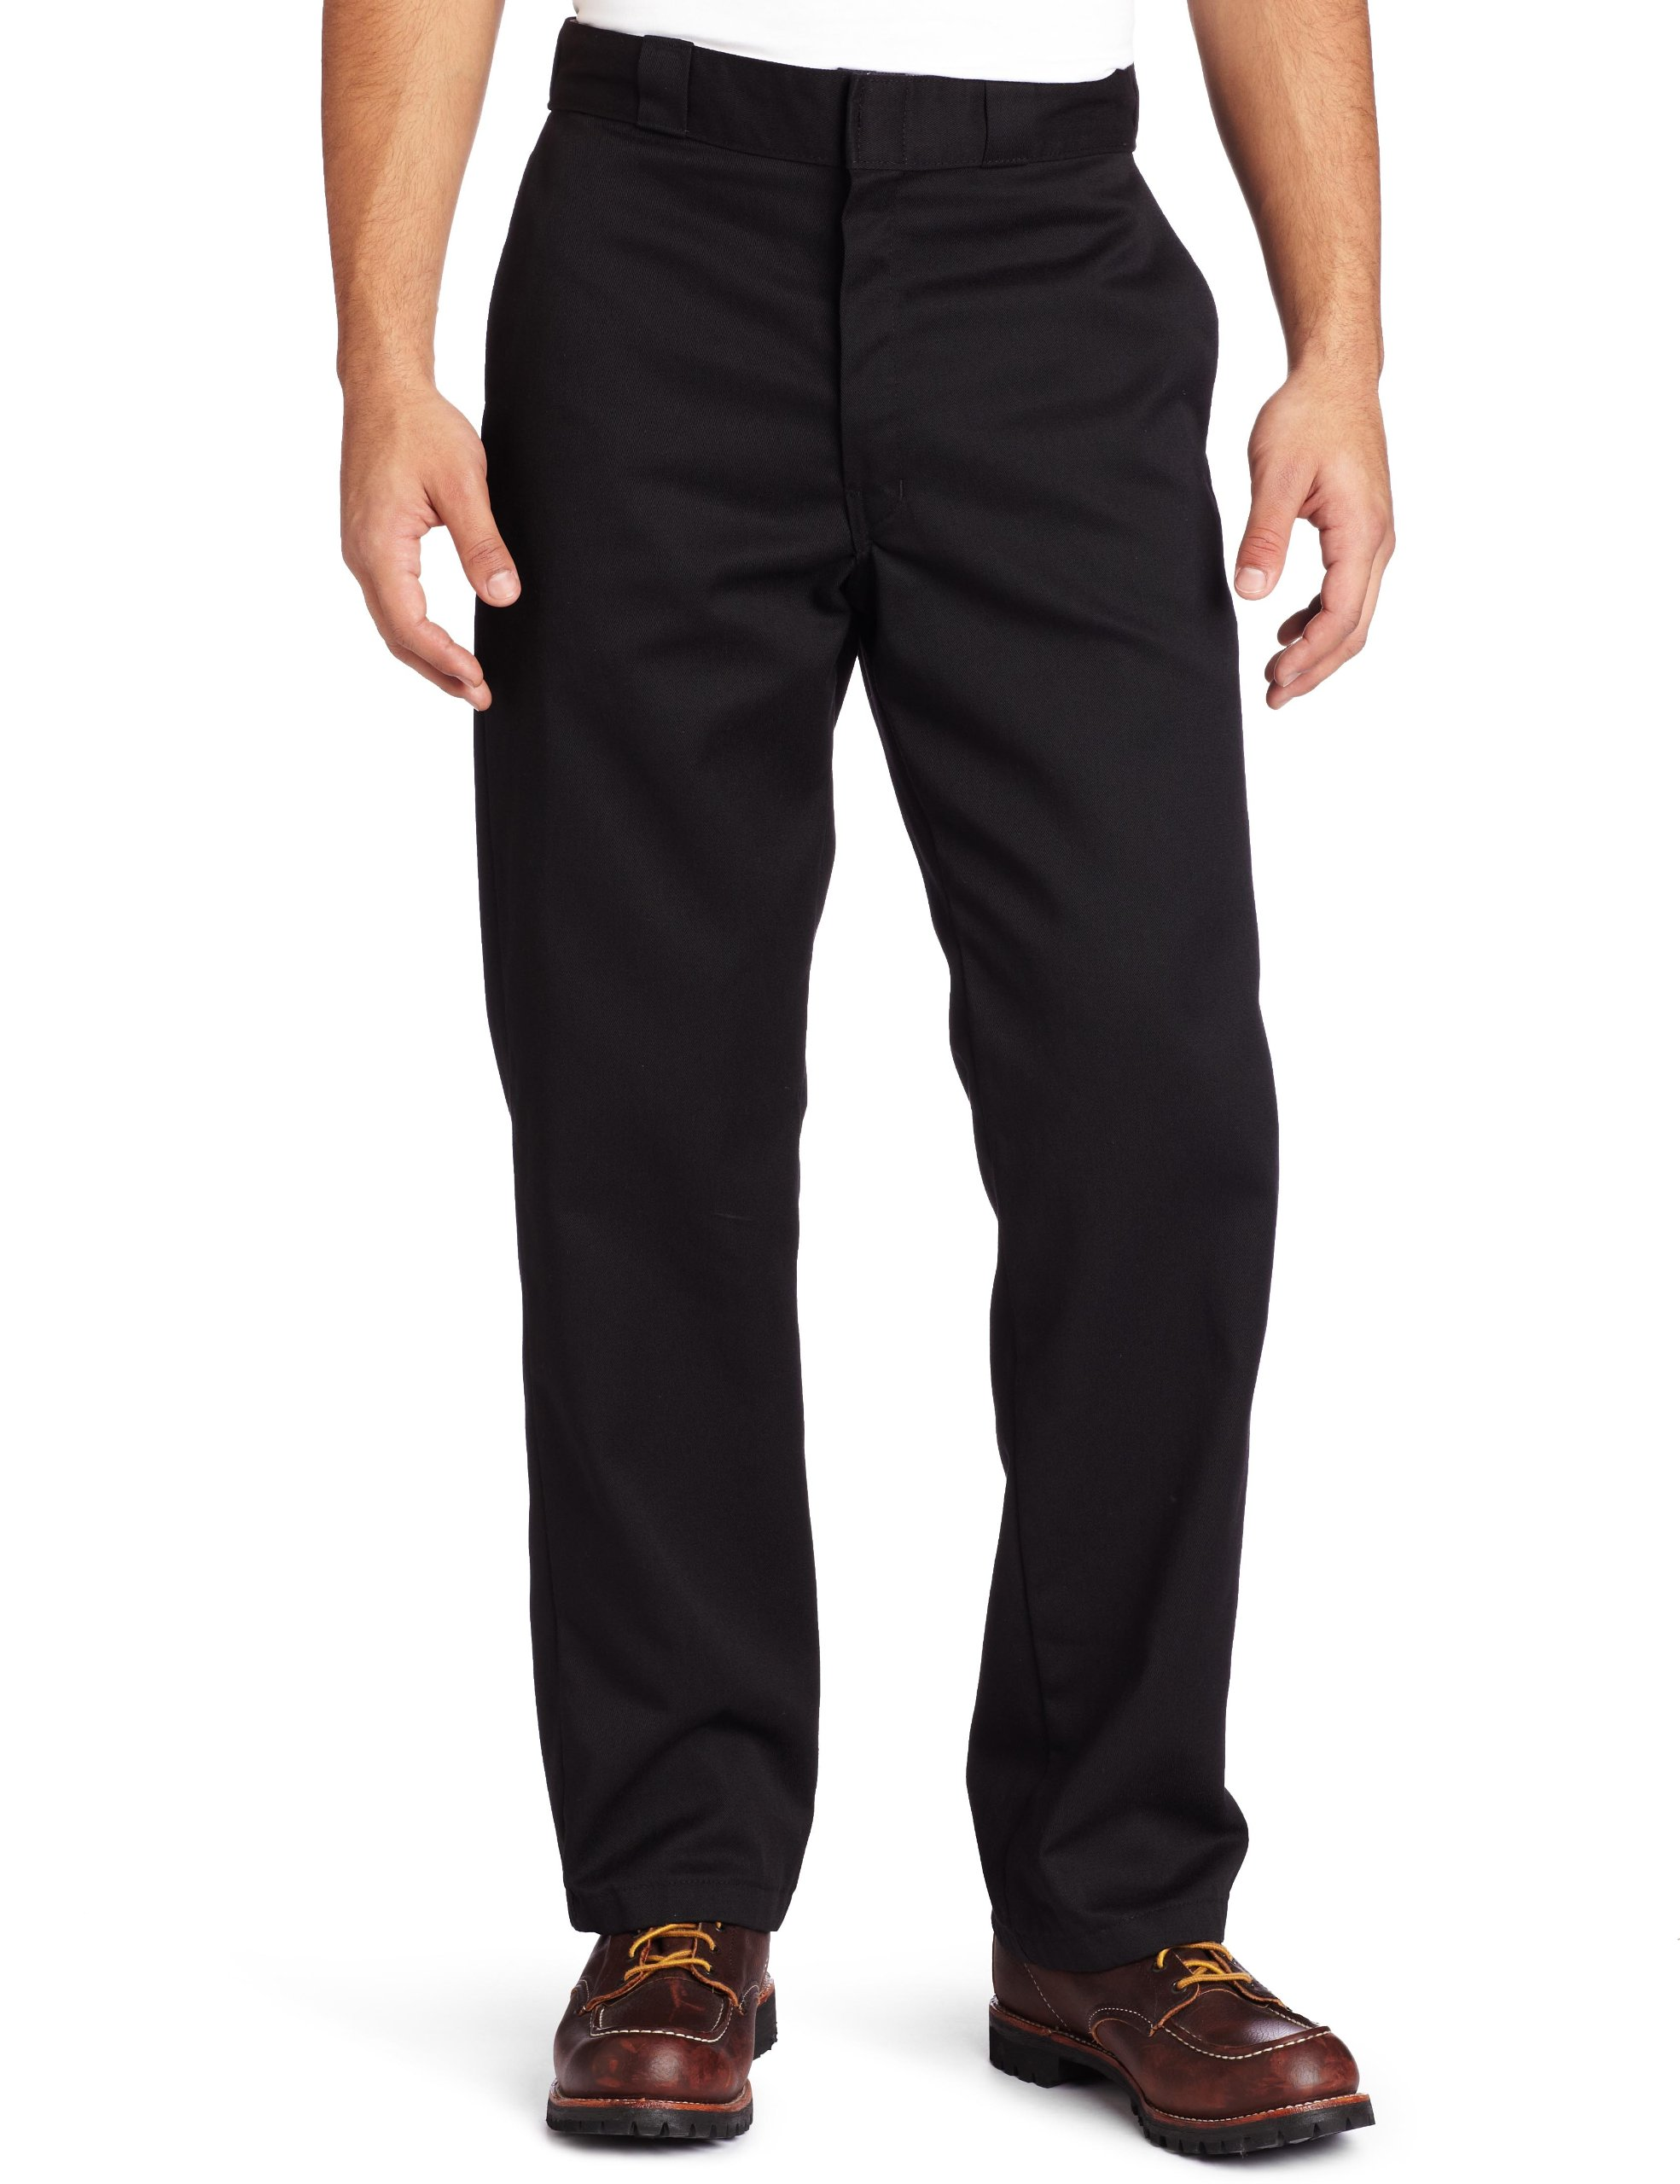 Dickies Men's Original 874 Work Pant Black 36W x 36L